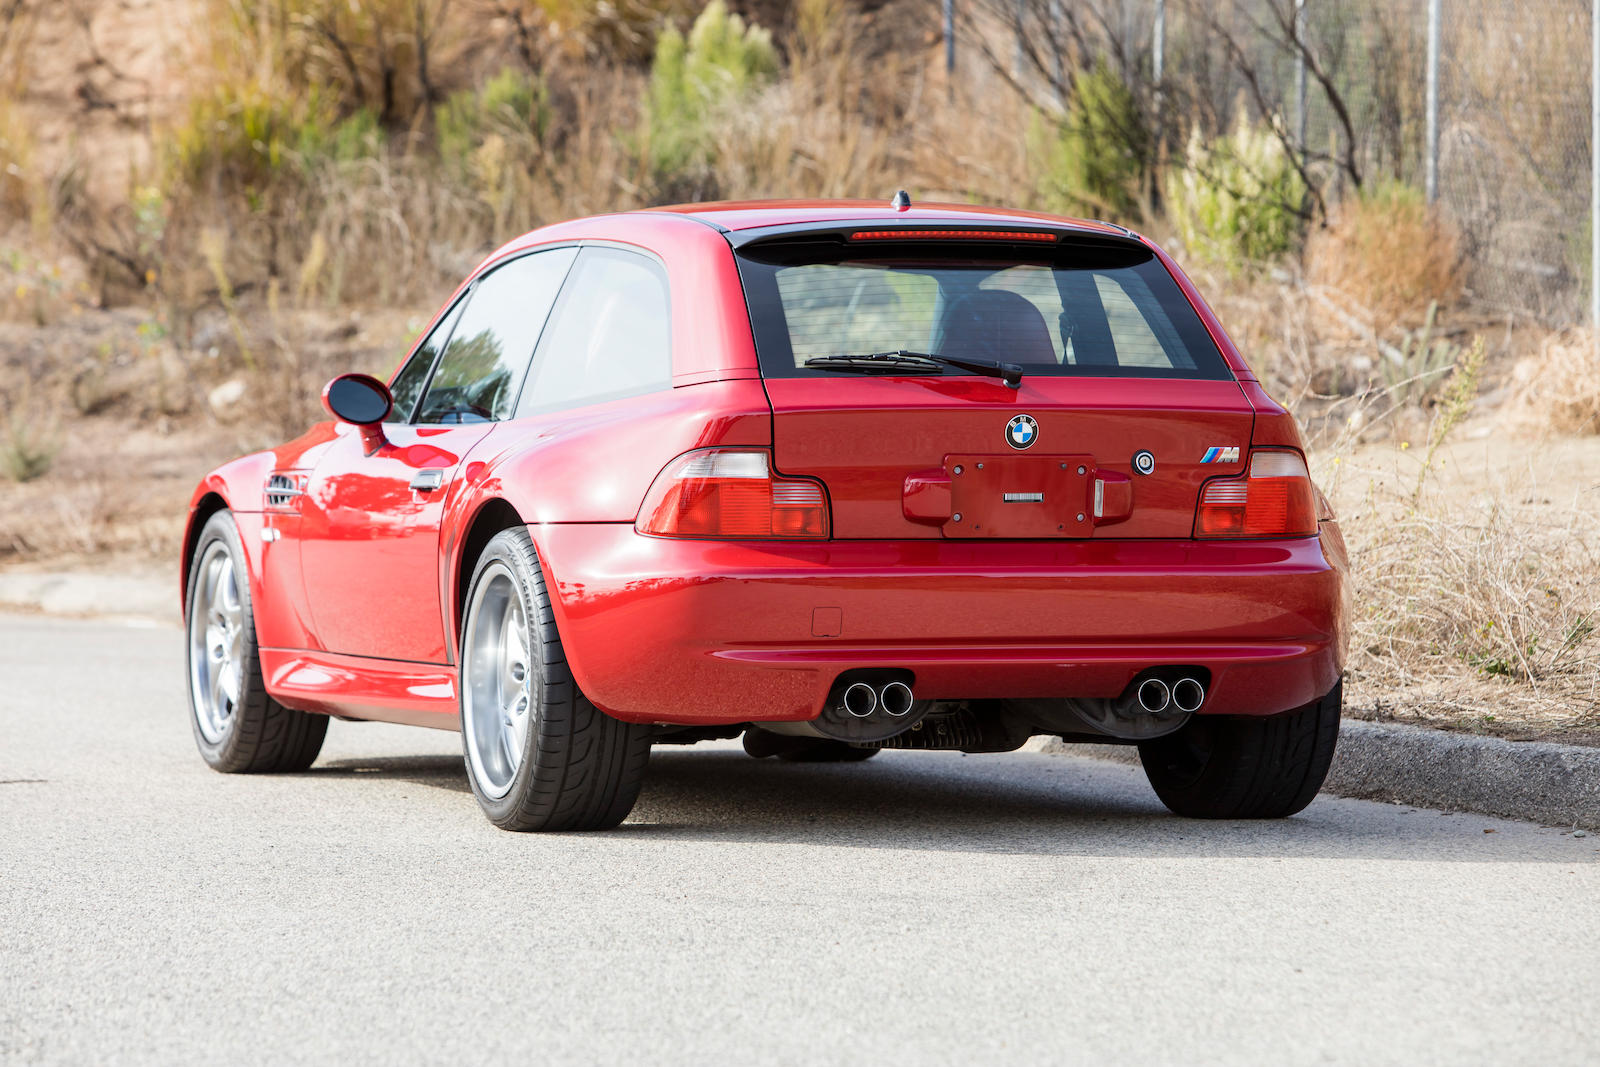 2002 BMW Z3 M Coupe rear 3/4